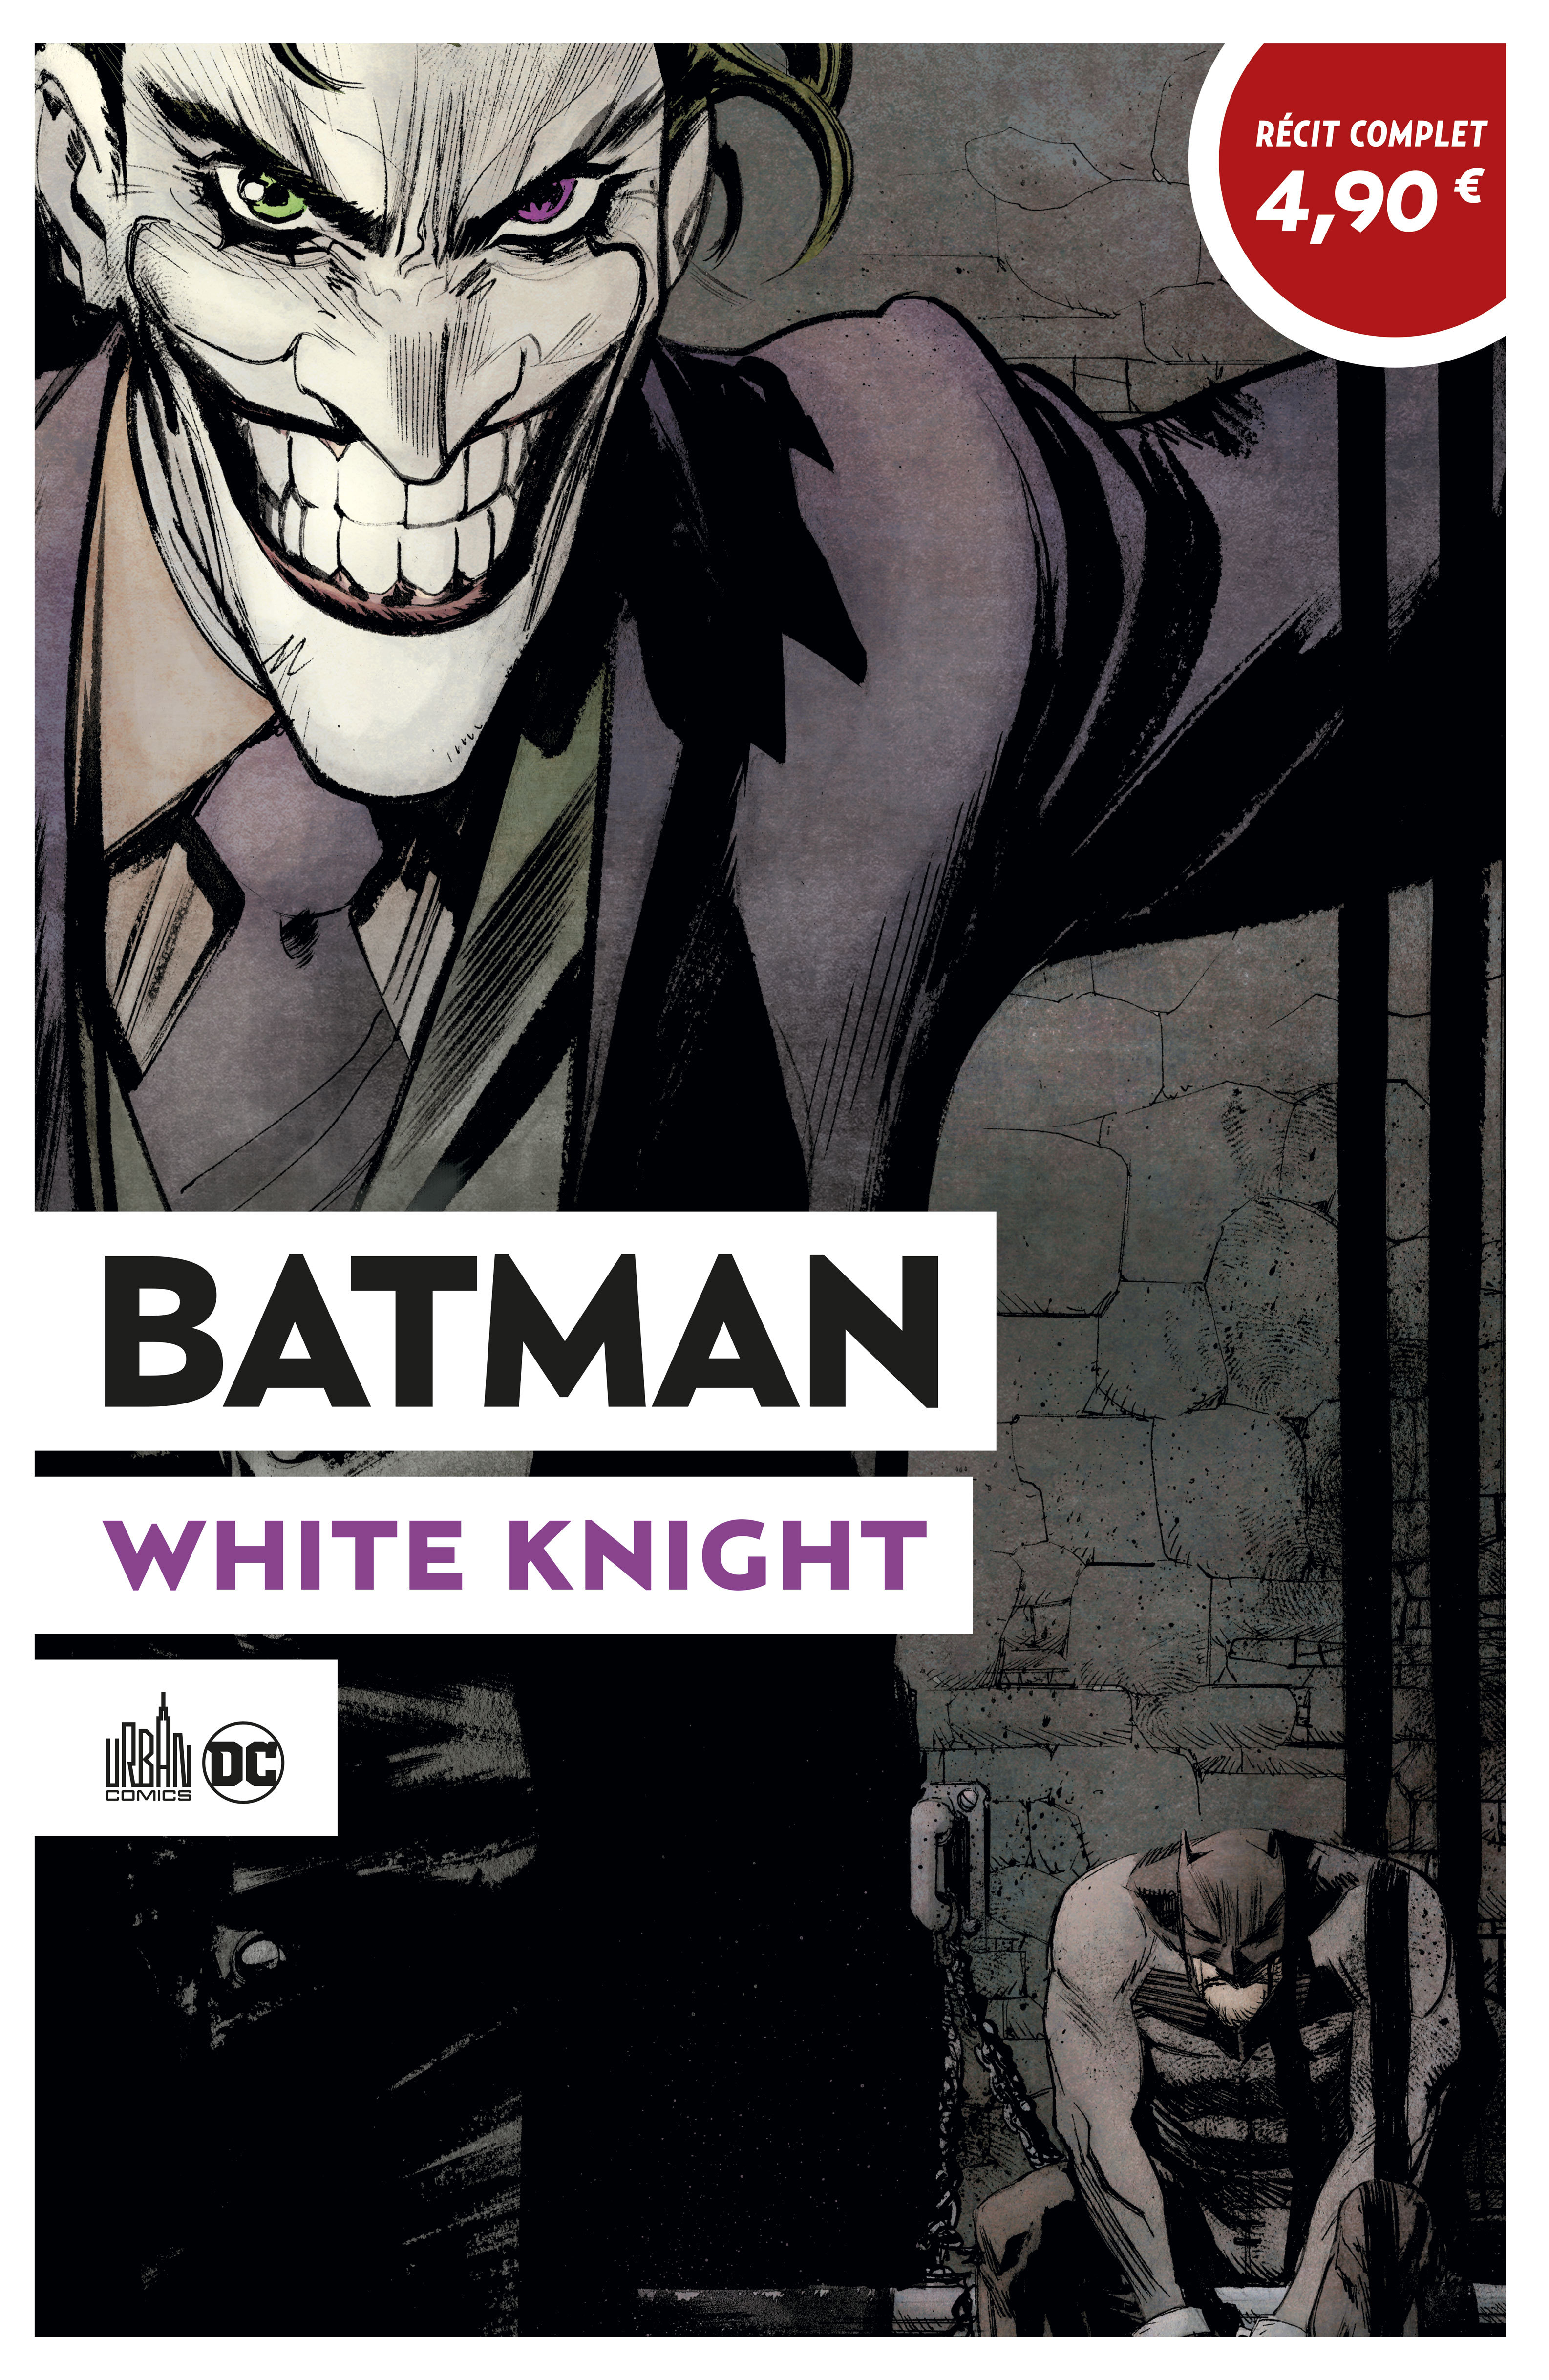 OPERATION ETE 2020 - T01 - OPERATION ETE 2020 - BATMAN WHITE KNIGHT